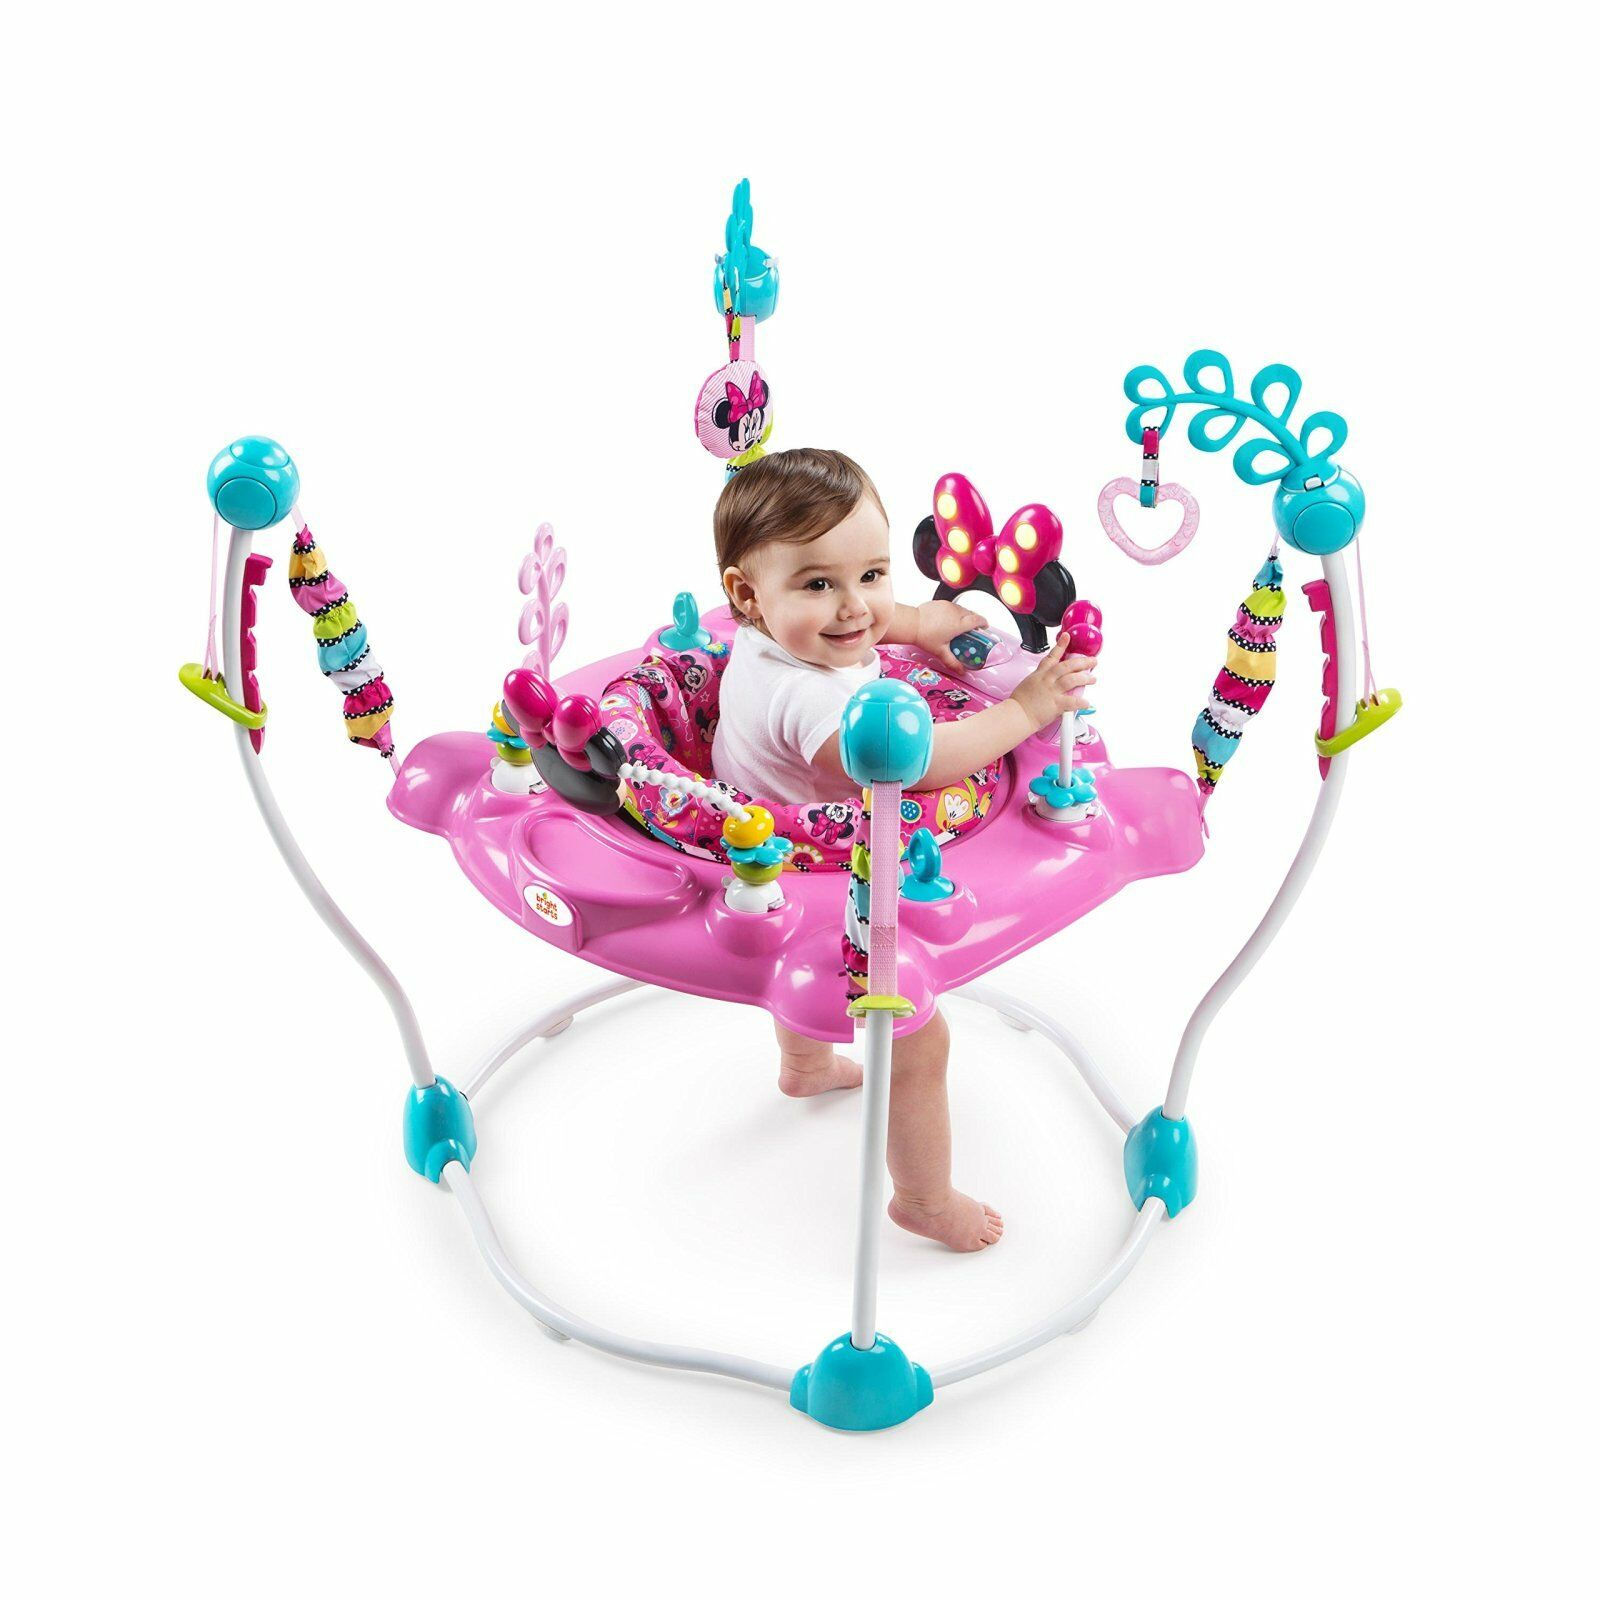 Toys Bright Starts Minnie Mouse PeekAboo Activity Jumperoo